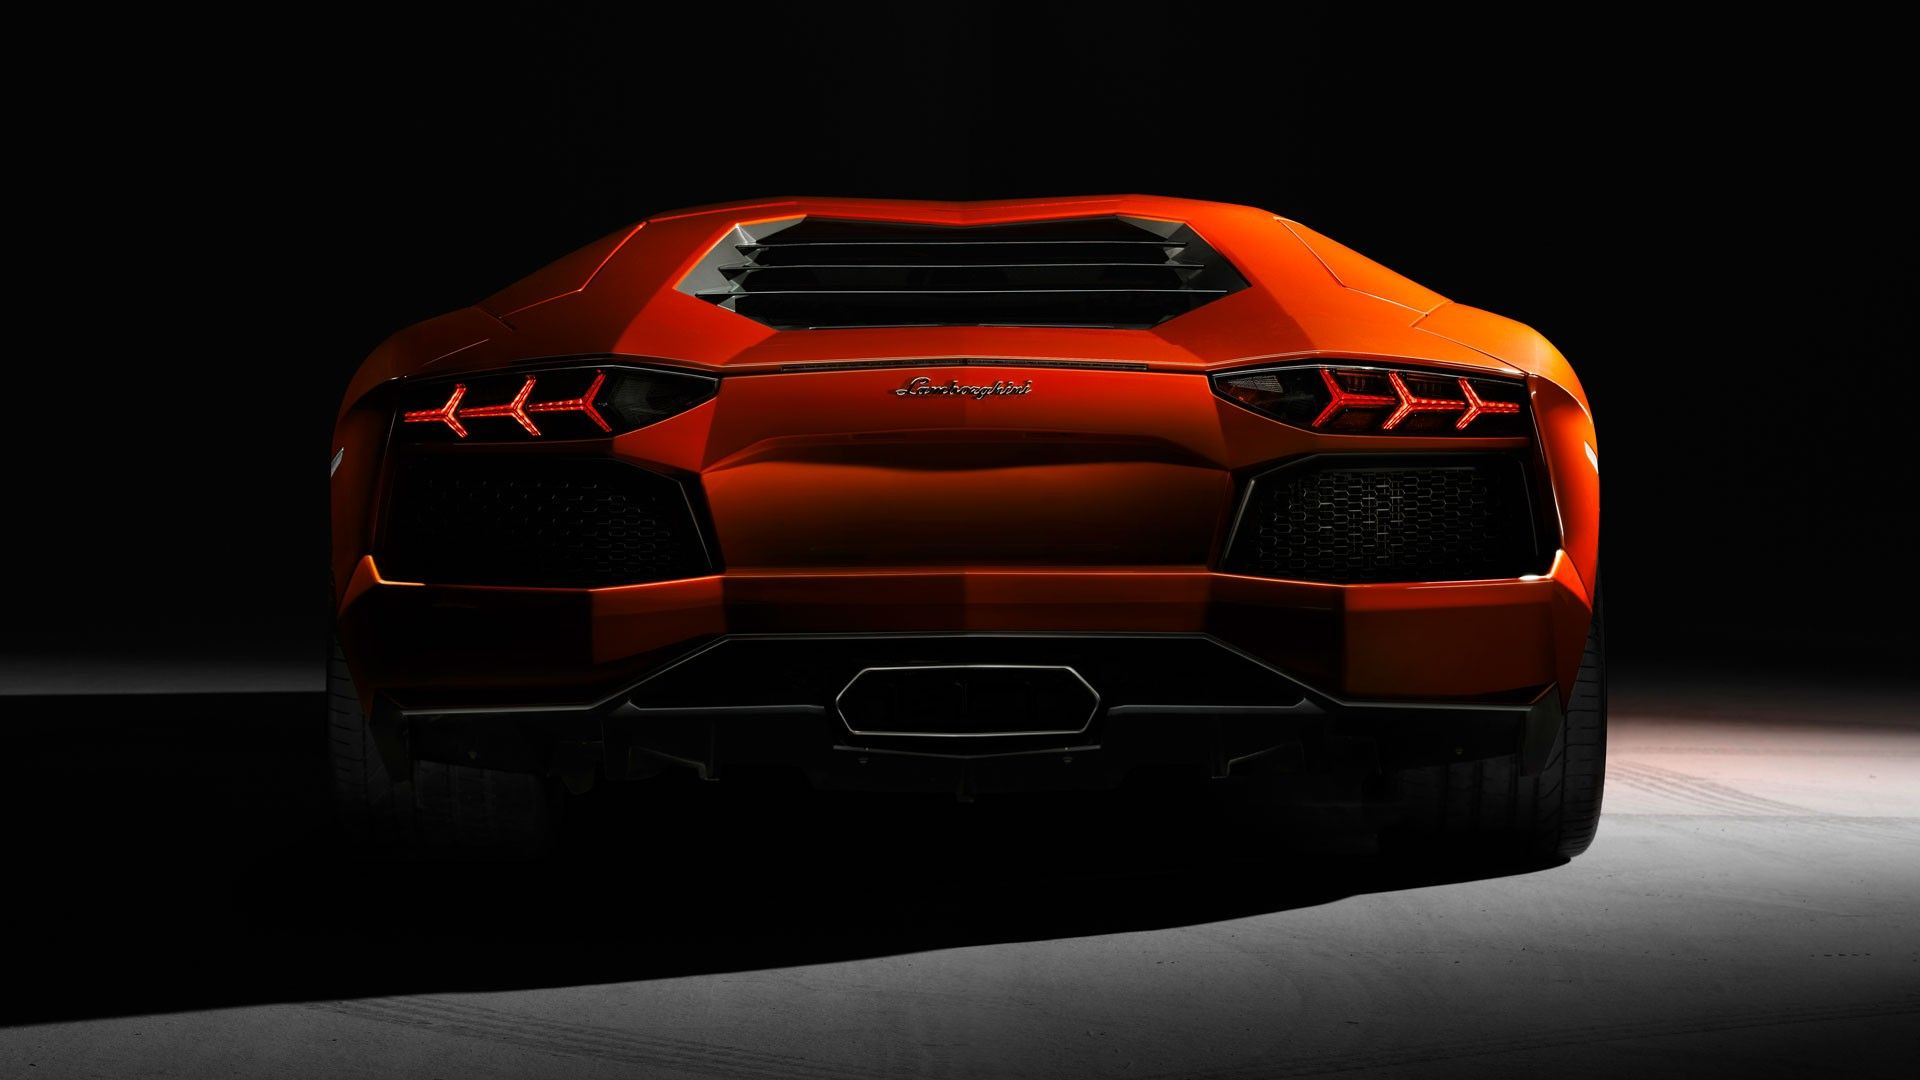 1920x1080 Lamborghini Aventador Dark Hd Wallpaper